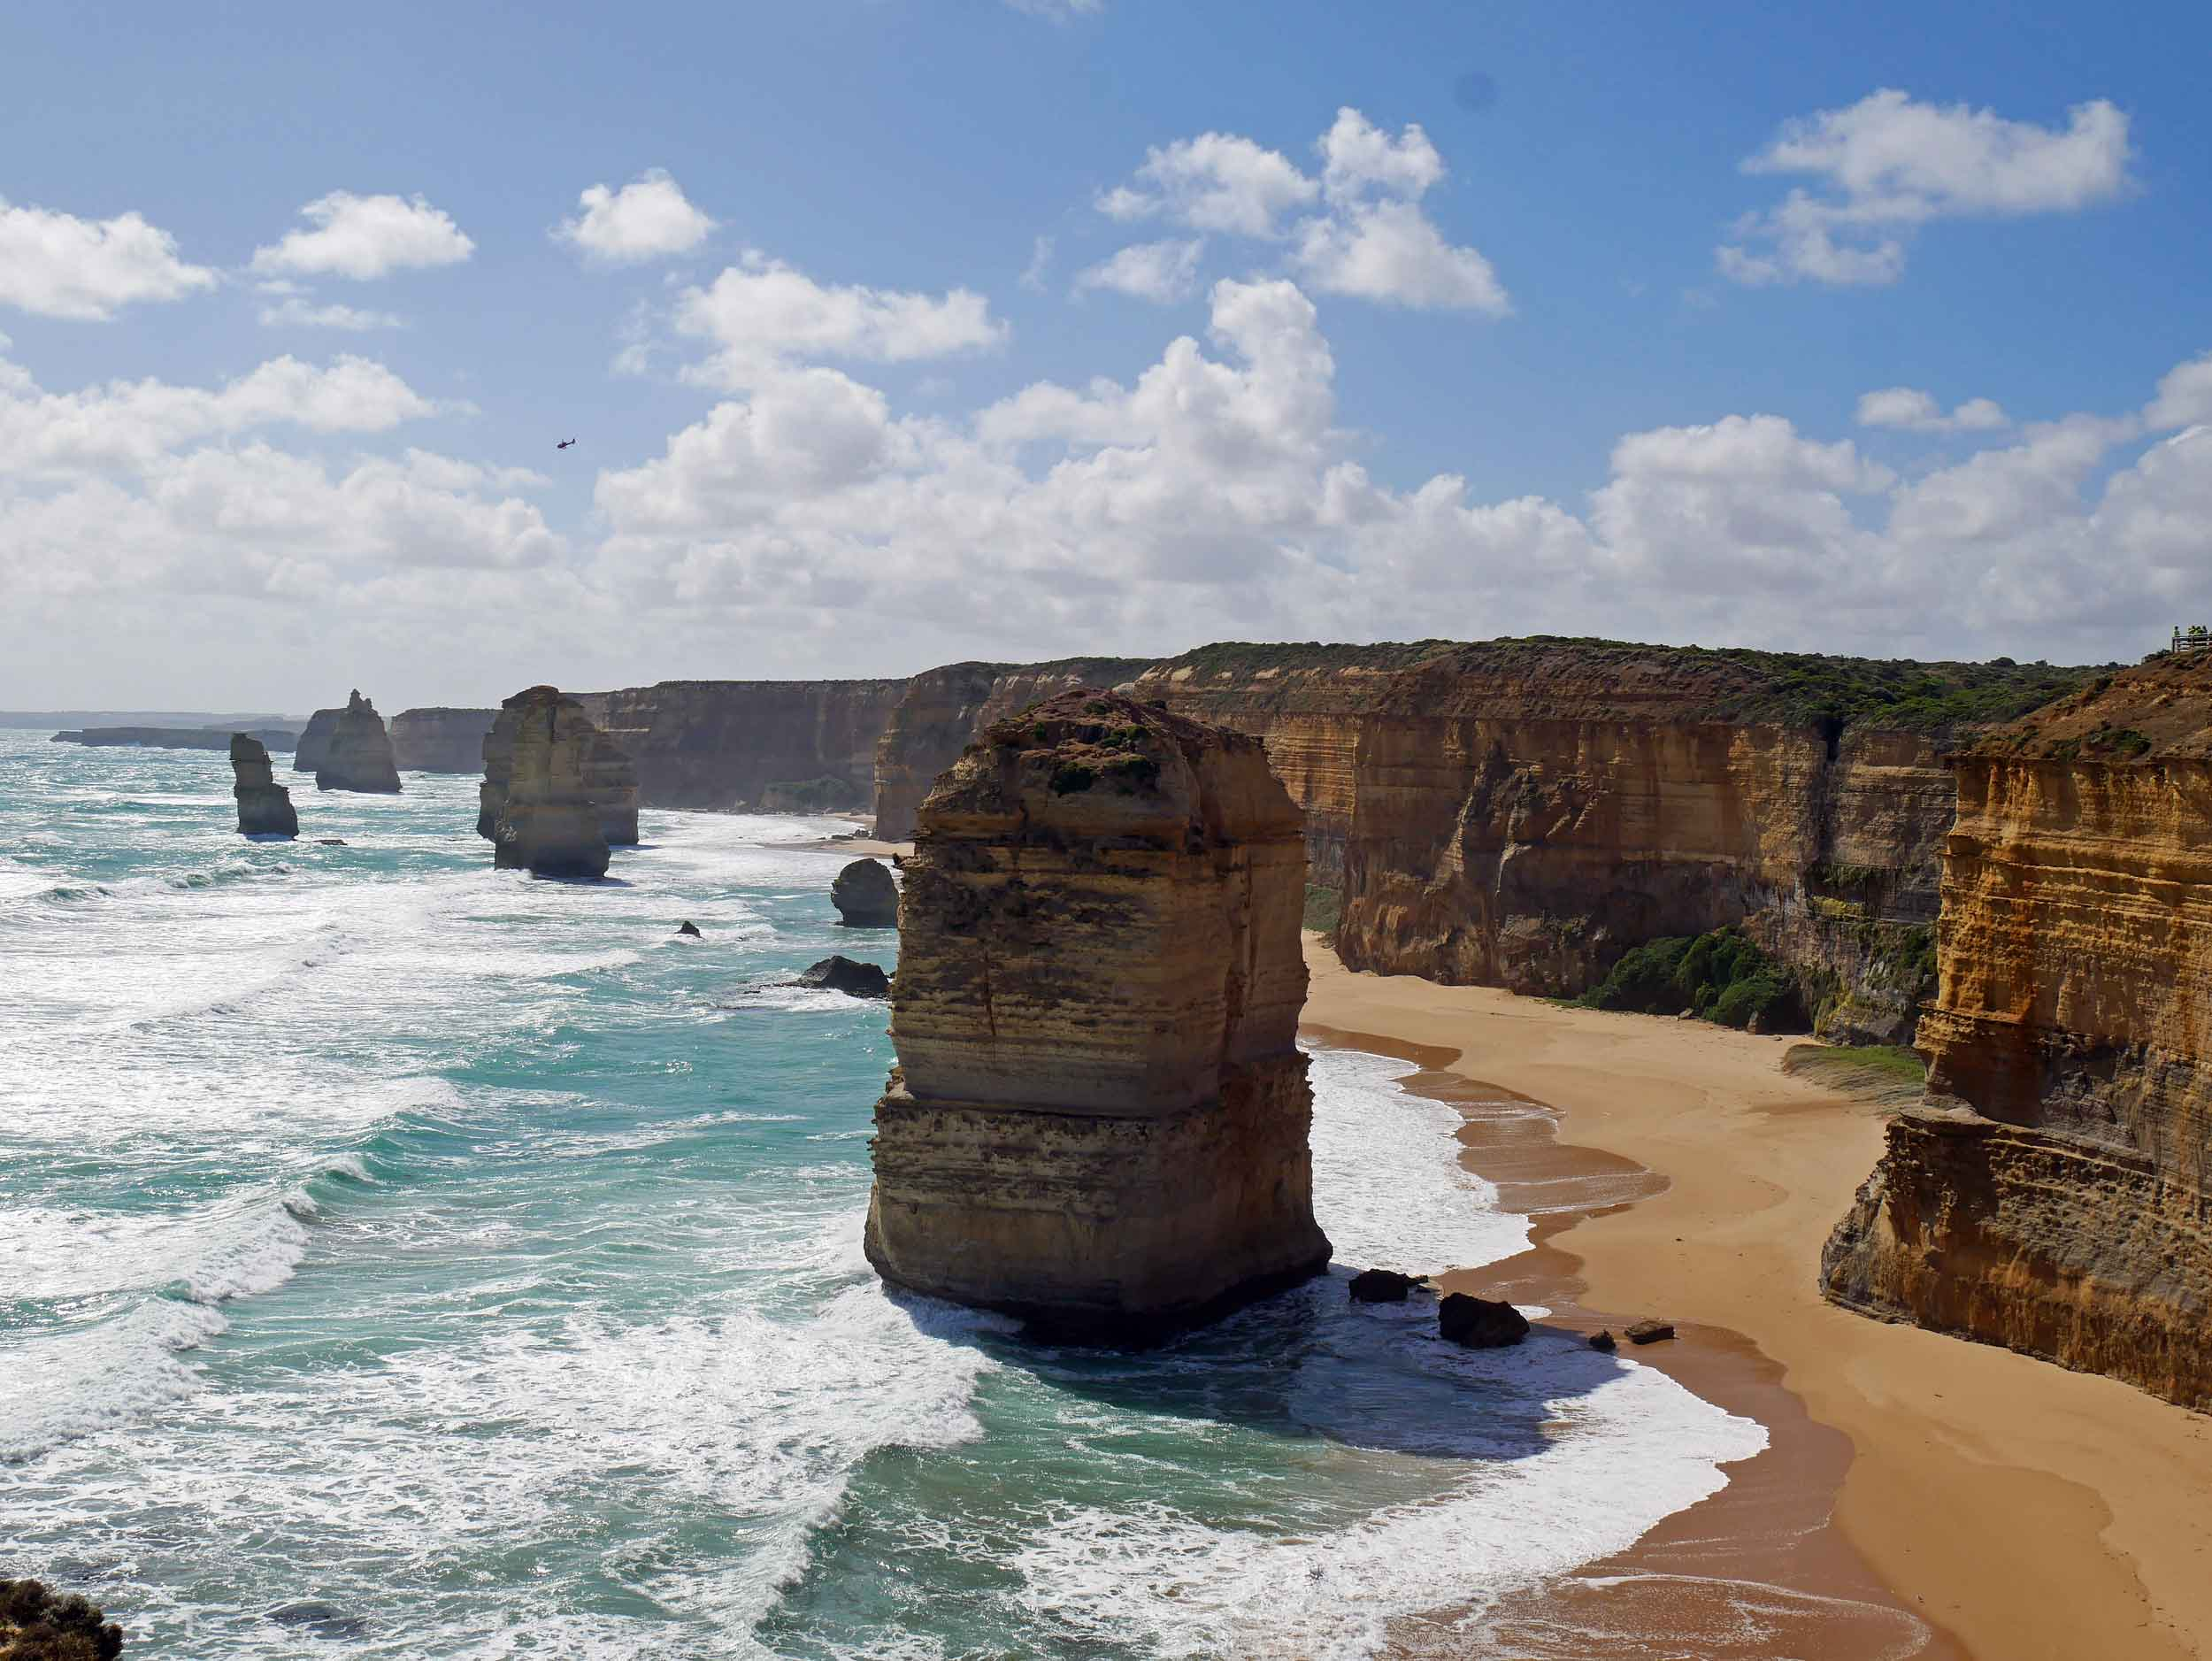 The 12 Apostles, which are giant limestone stacks near Port Campbell,are constantly changing both is shape and number (Jan 24).